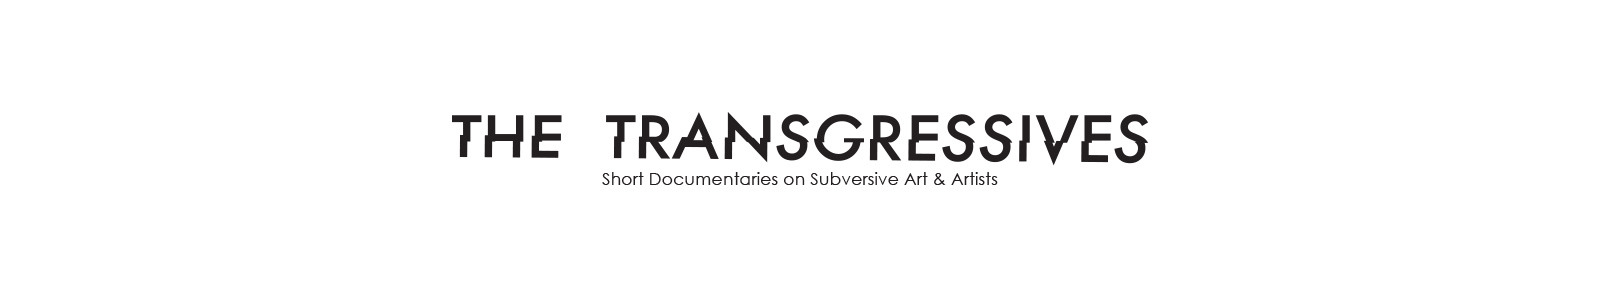 The Transgressives with Judy Ohio